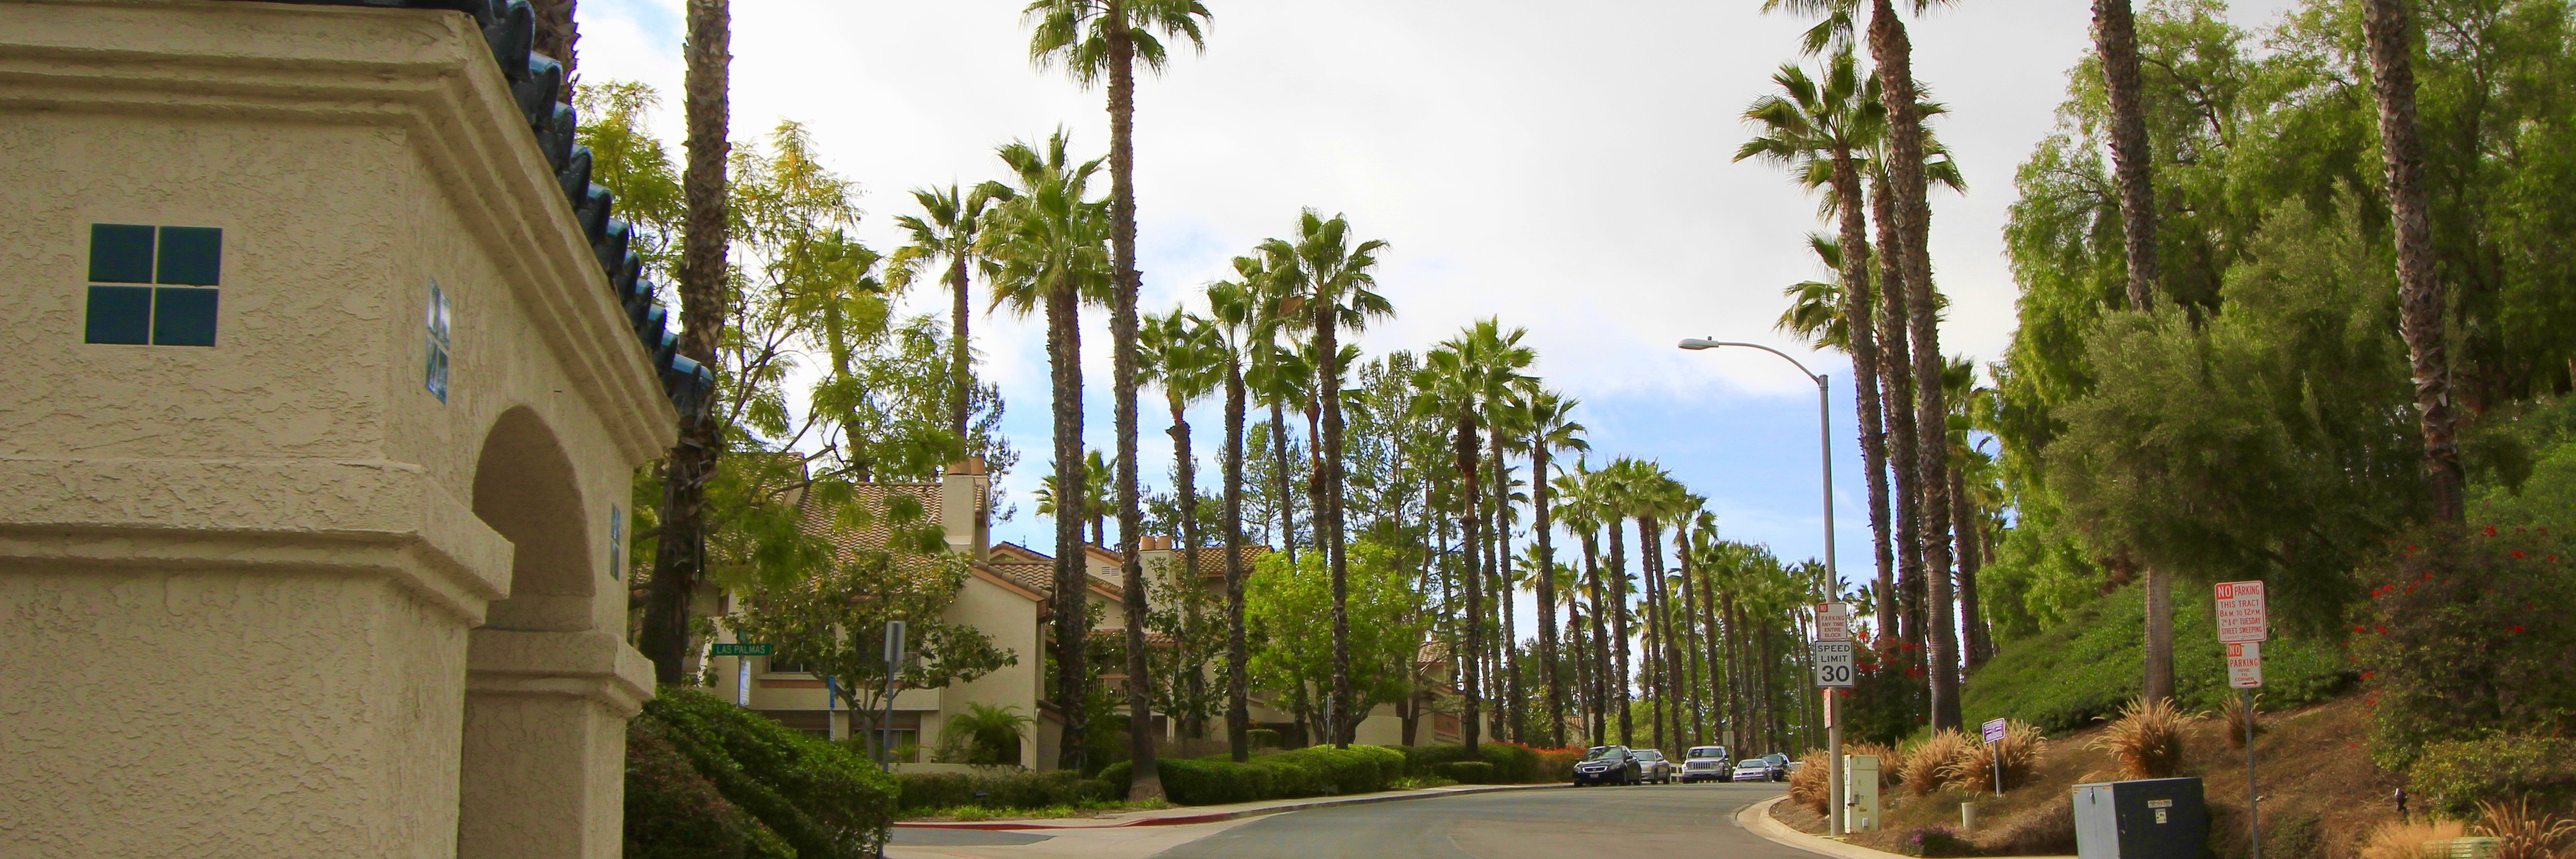 Briosa is a community located in the city of Laguna Hills, CA